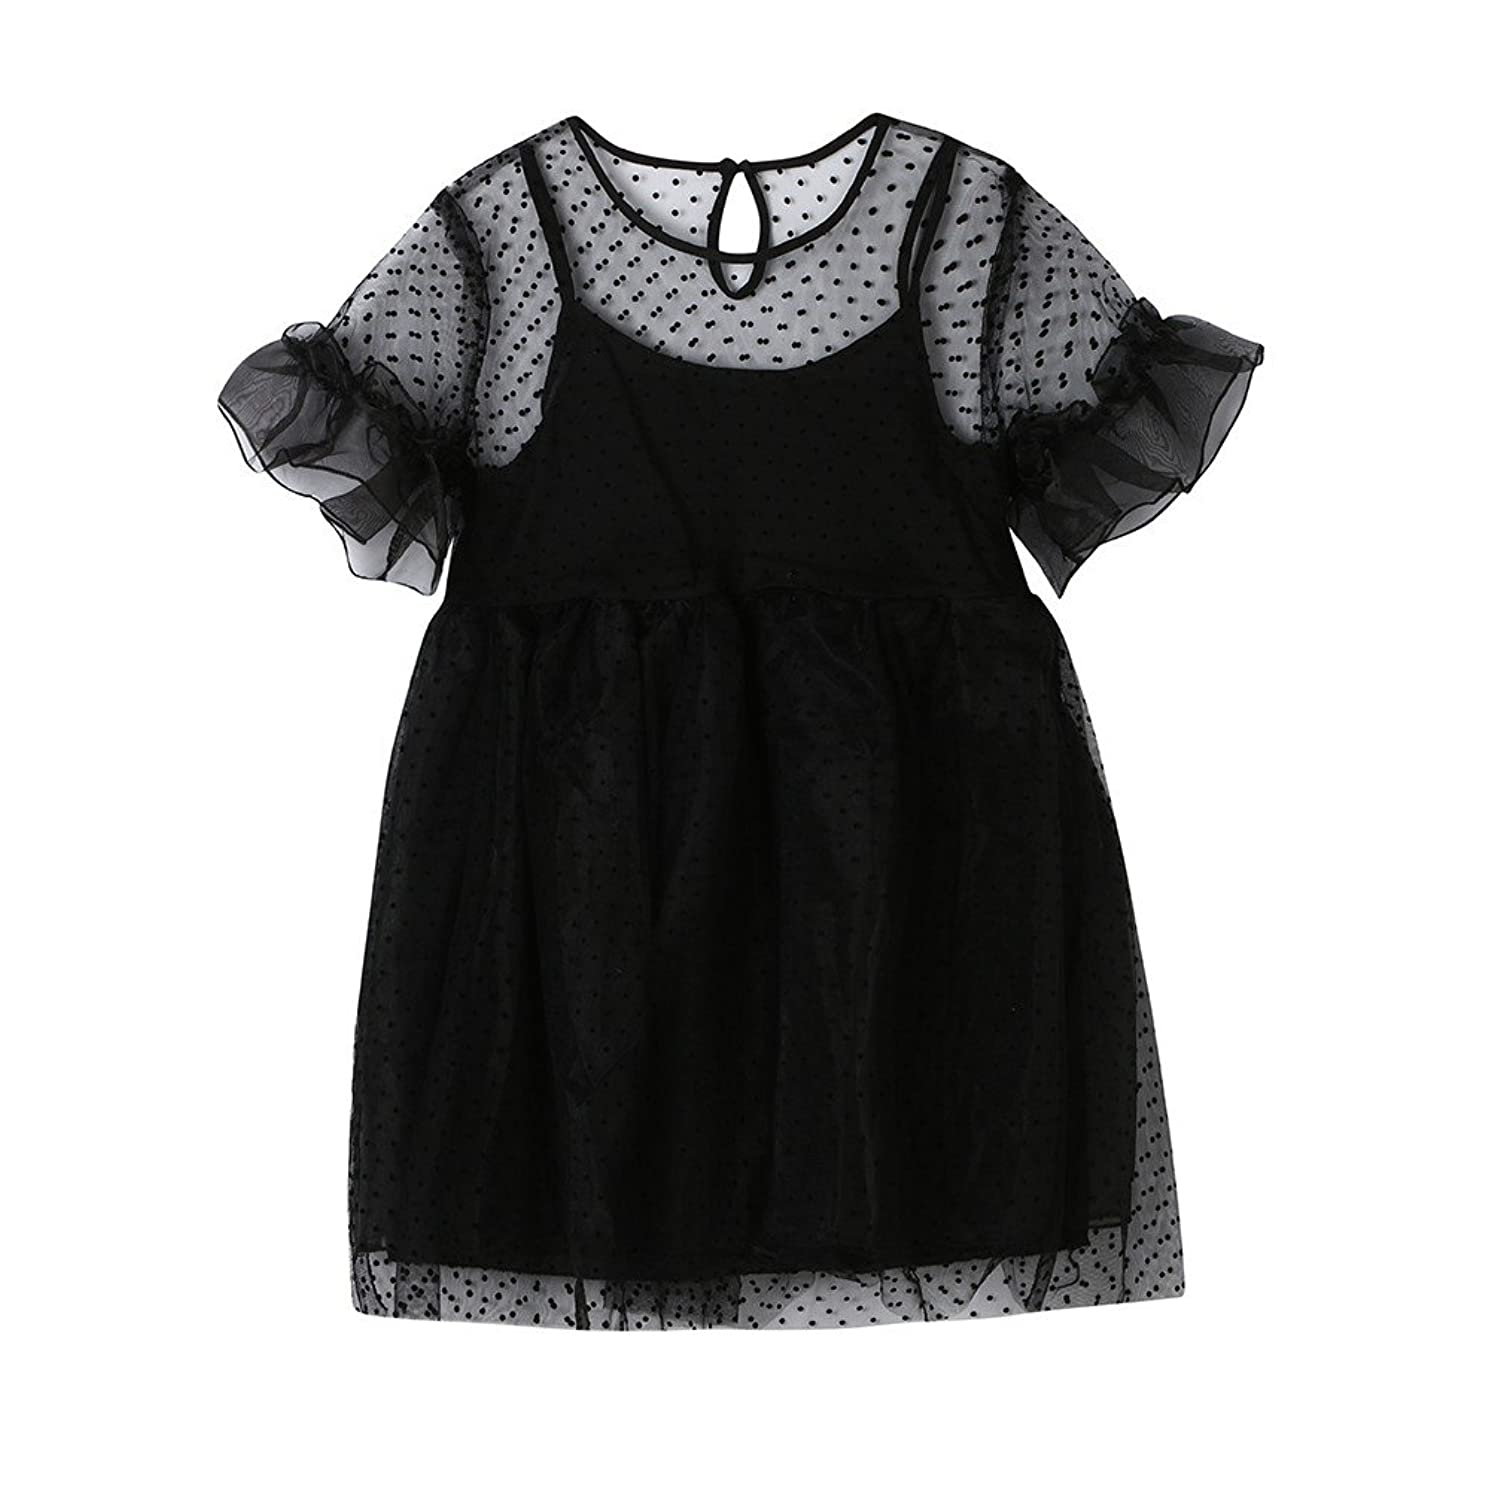 SSZZoo Infant Kid Girls Net Yarn Tutu Solid Wave Point Ruffle Sleeve Casual Princess Dress Clothes